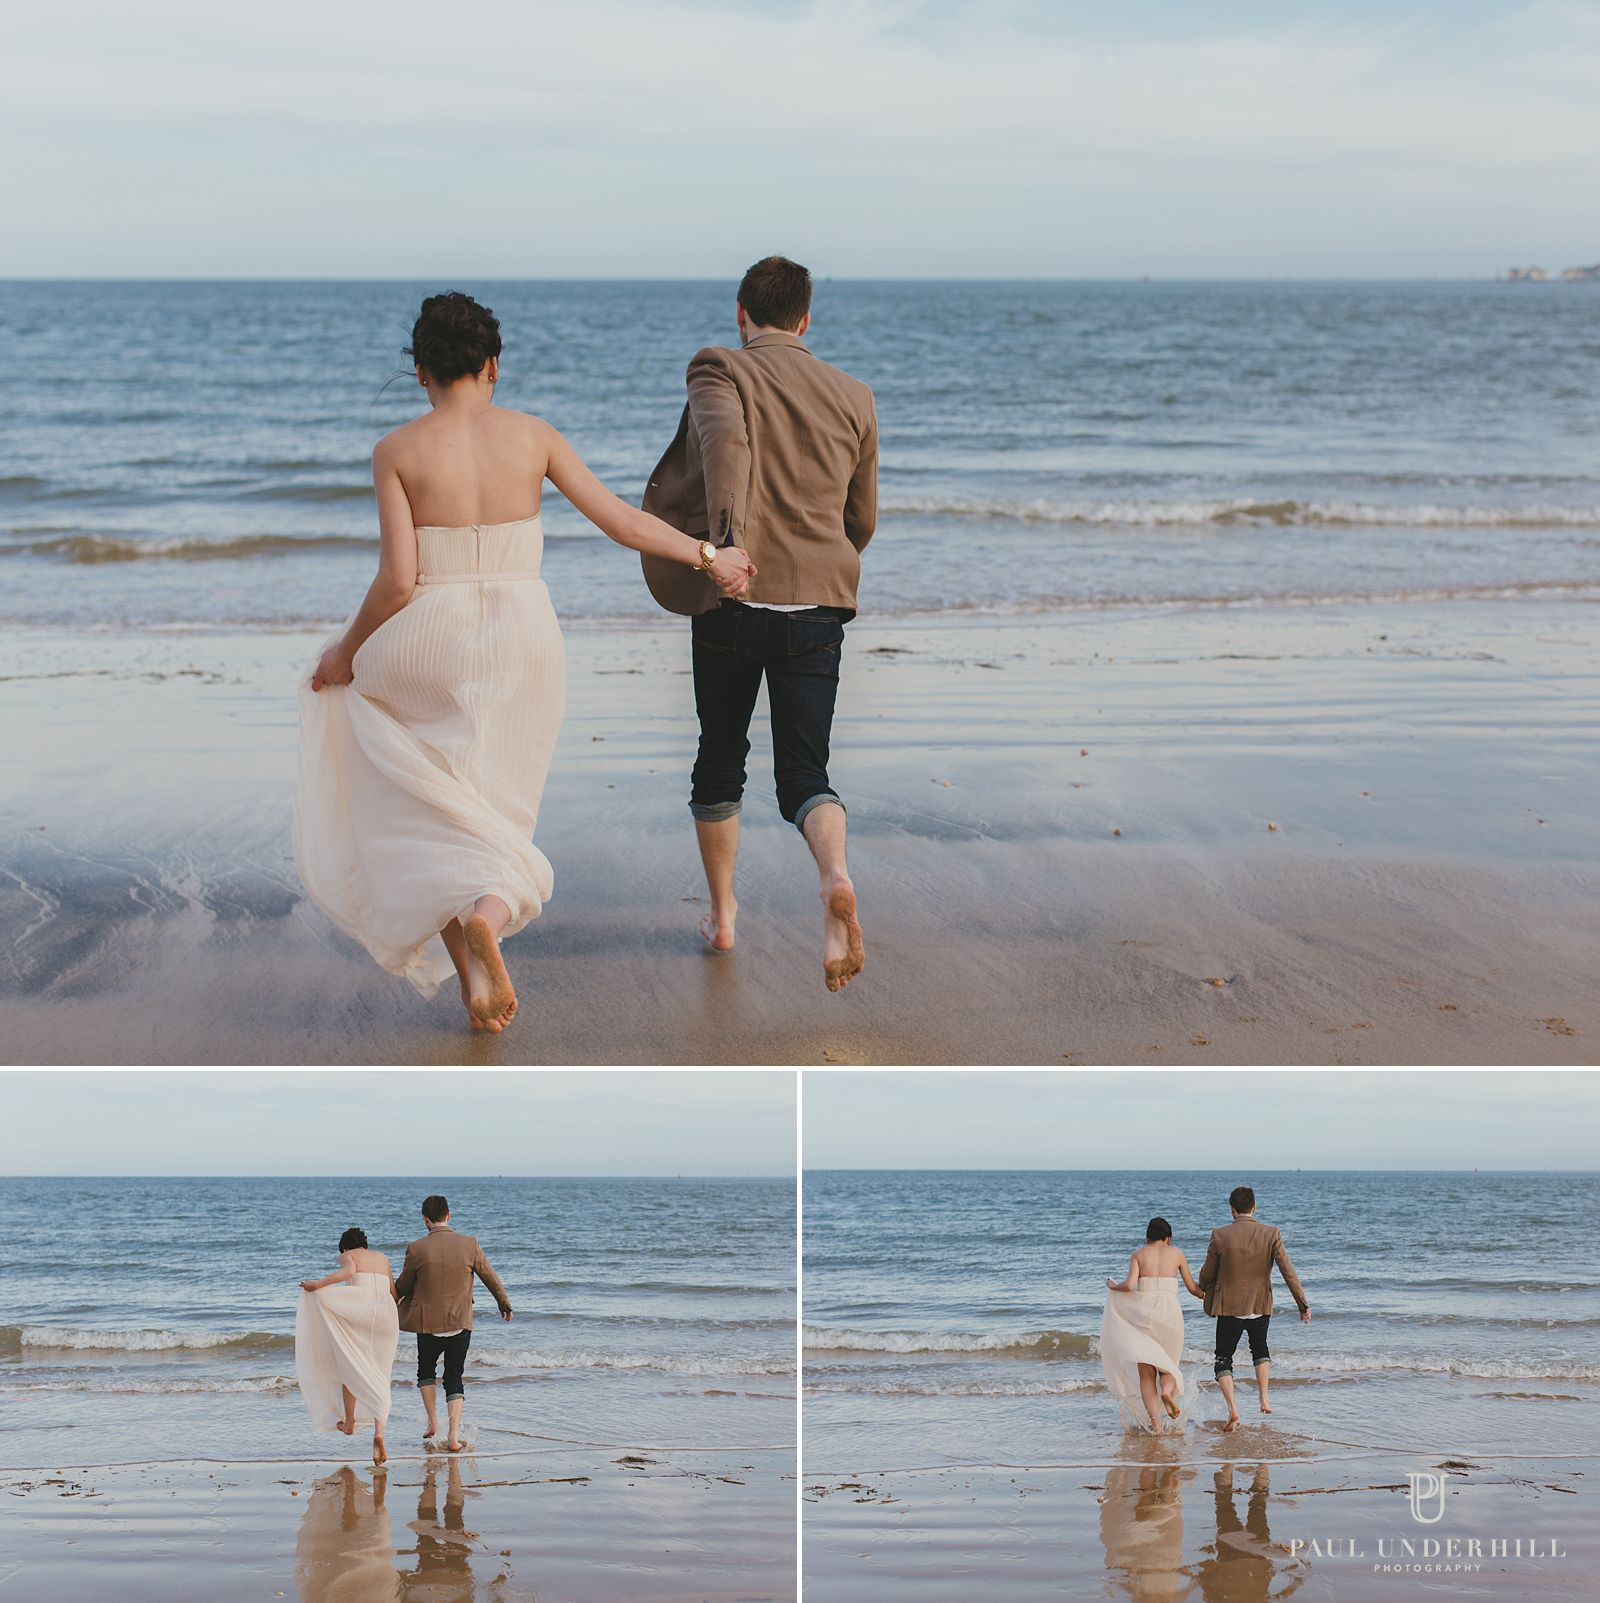 Wedding photography Sandanks Poole